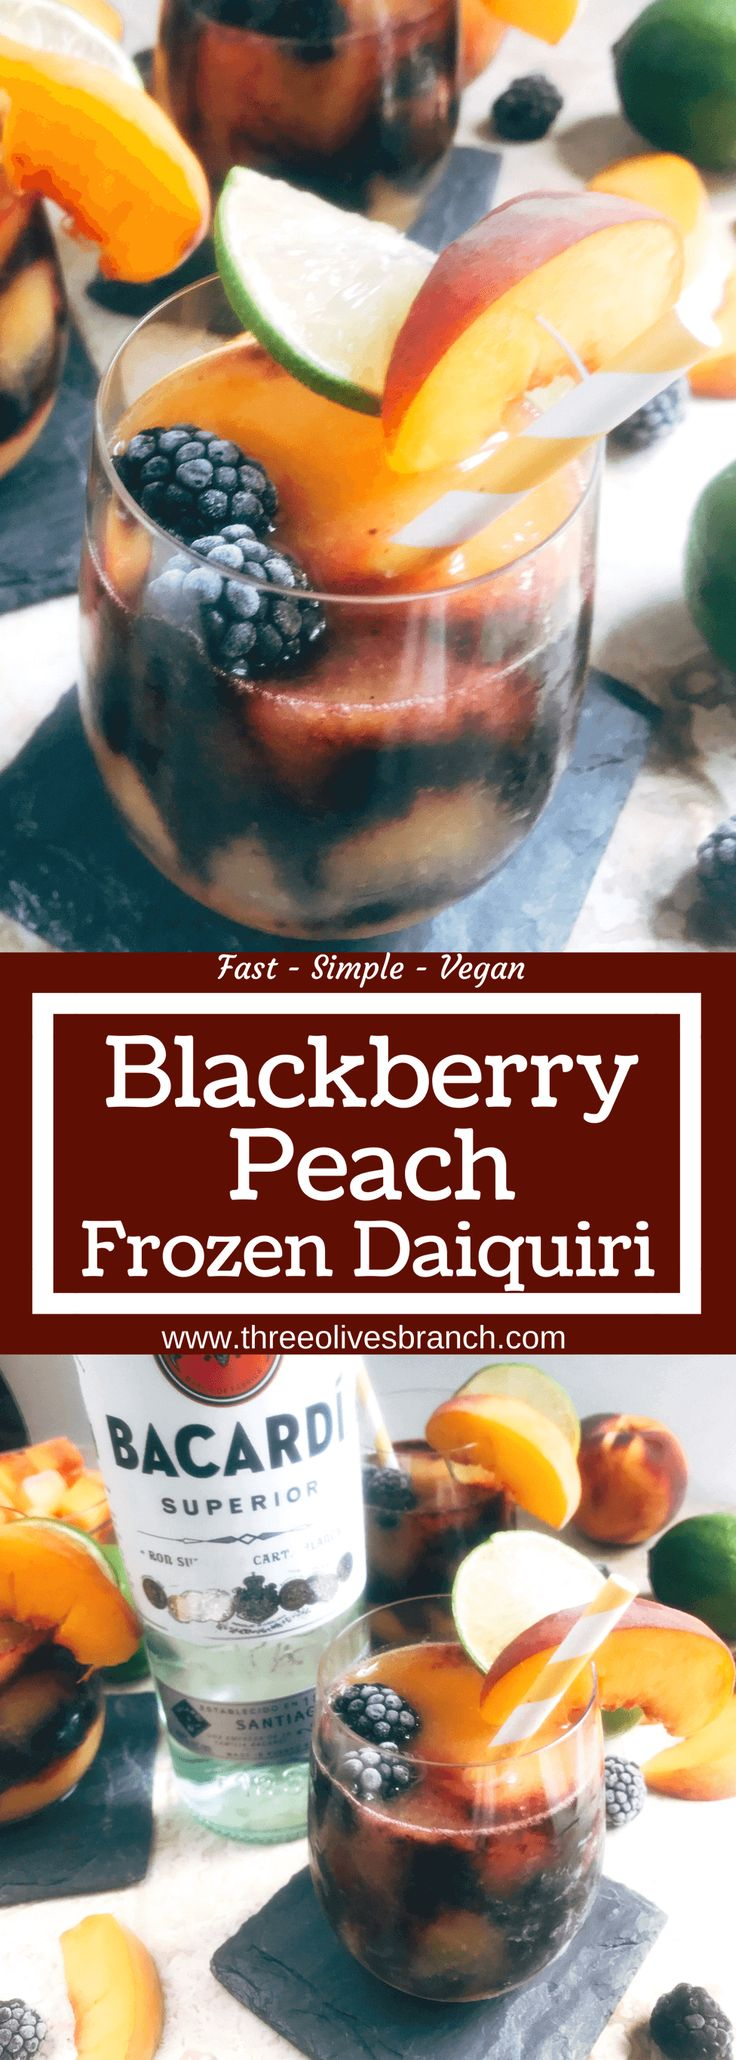 Msg 4 21+ A quick and simple blended alcoholic beverage perfect for warm summer weather. Peaches and blackberries are blended with Bacardi Superior Rum, simple syrup, and lime to make this frozen layered drink. Just 10 minutes for this easy cocktail. Vegan, vegetarian. Blackberry Peach Frozen Daiquiri | Three Olives Branch | www.threeolivesbranch.com #RumInTheSun #ad